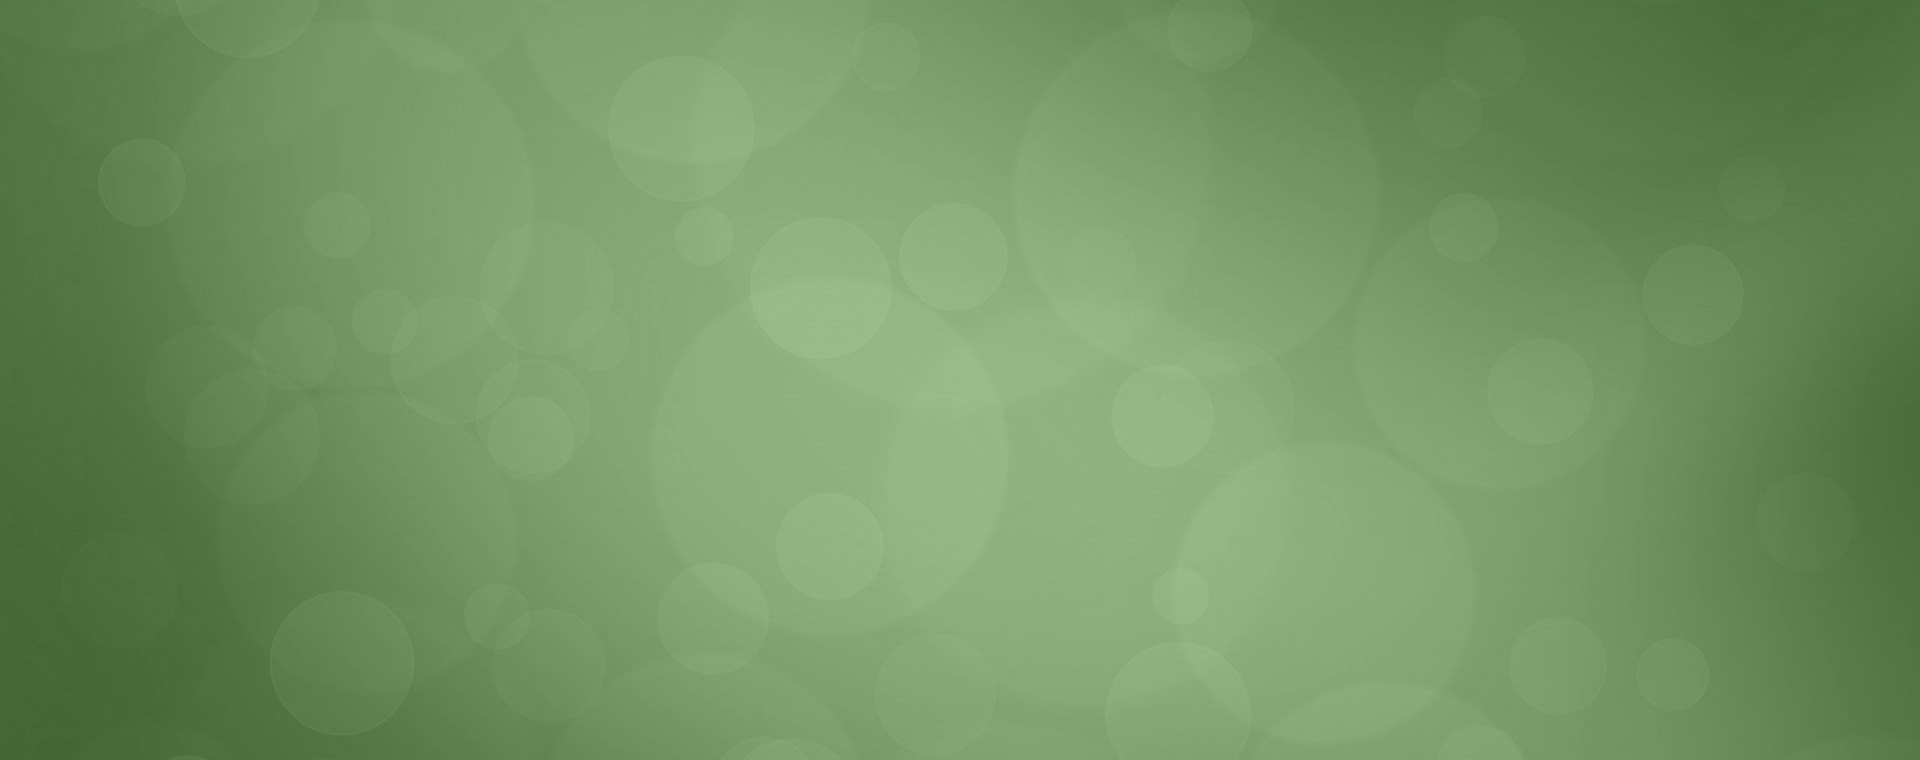 bubble_background_green